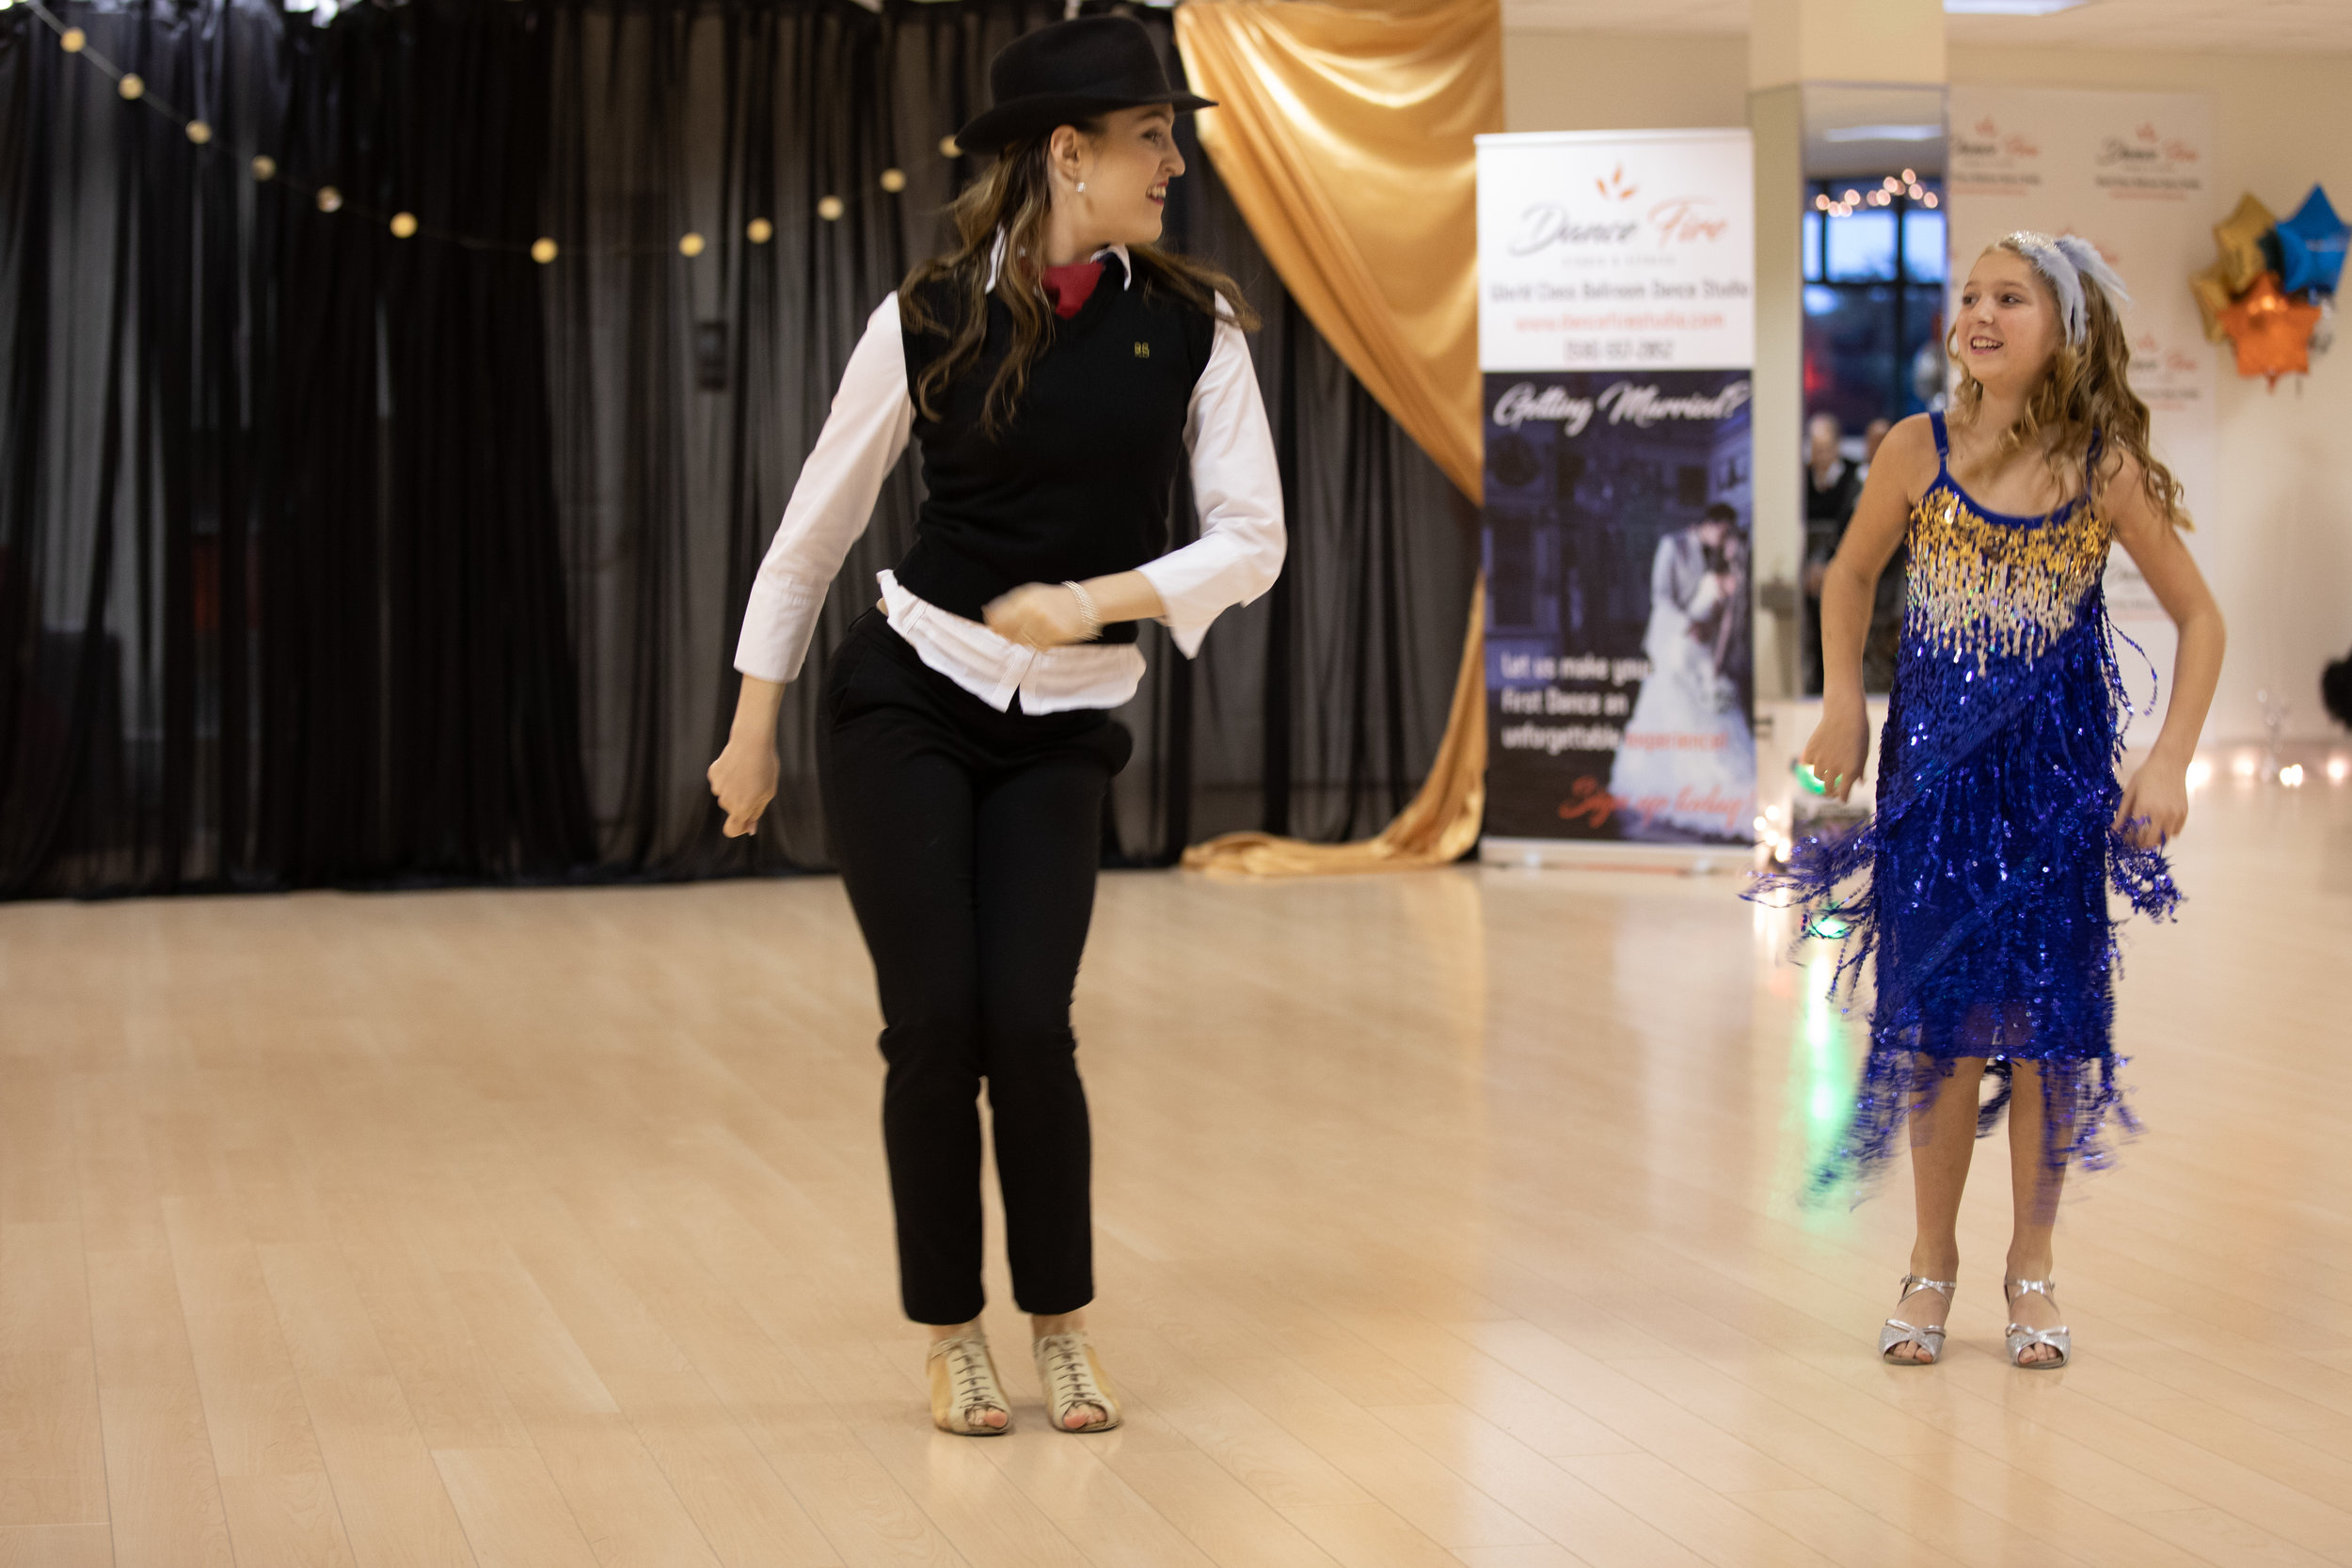 DanceFireShowcaseSpectacular2018-15.jpg